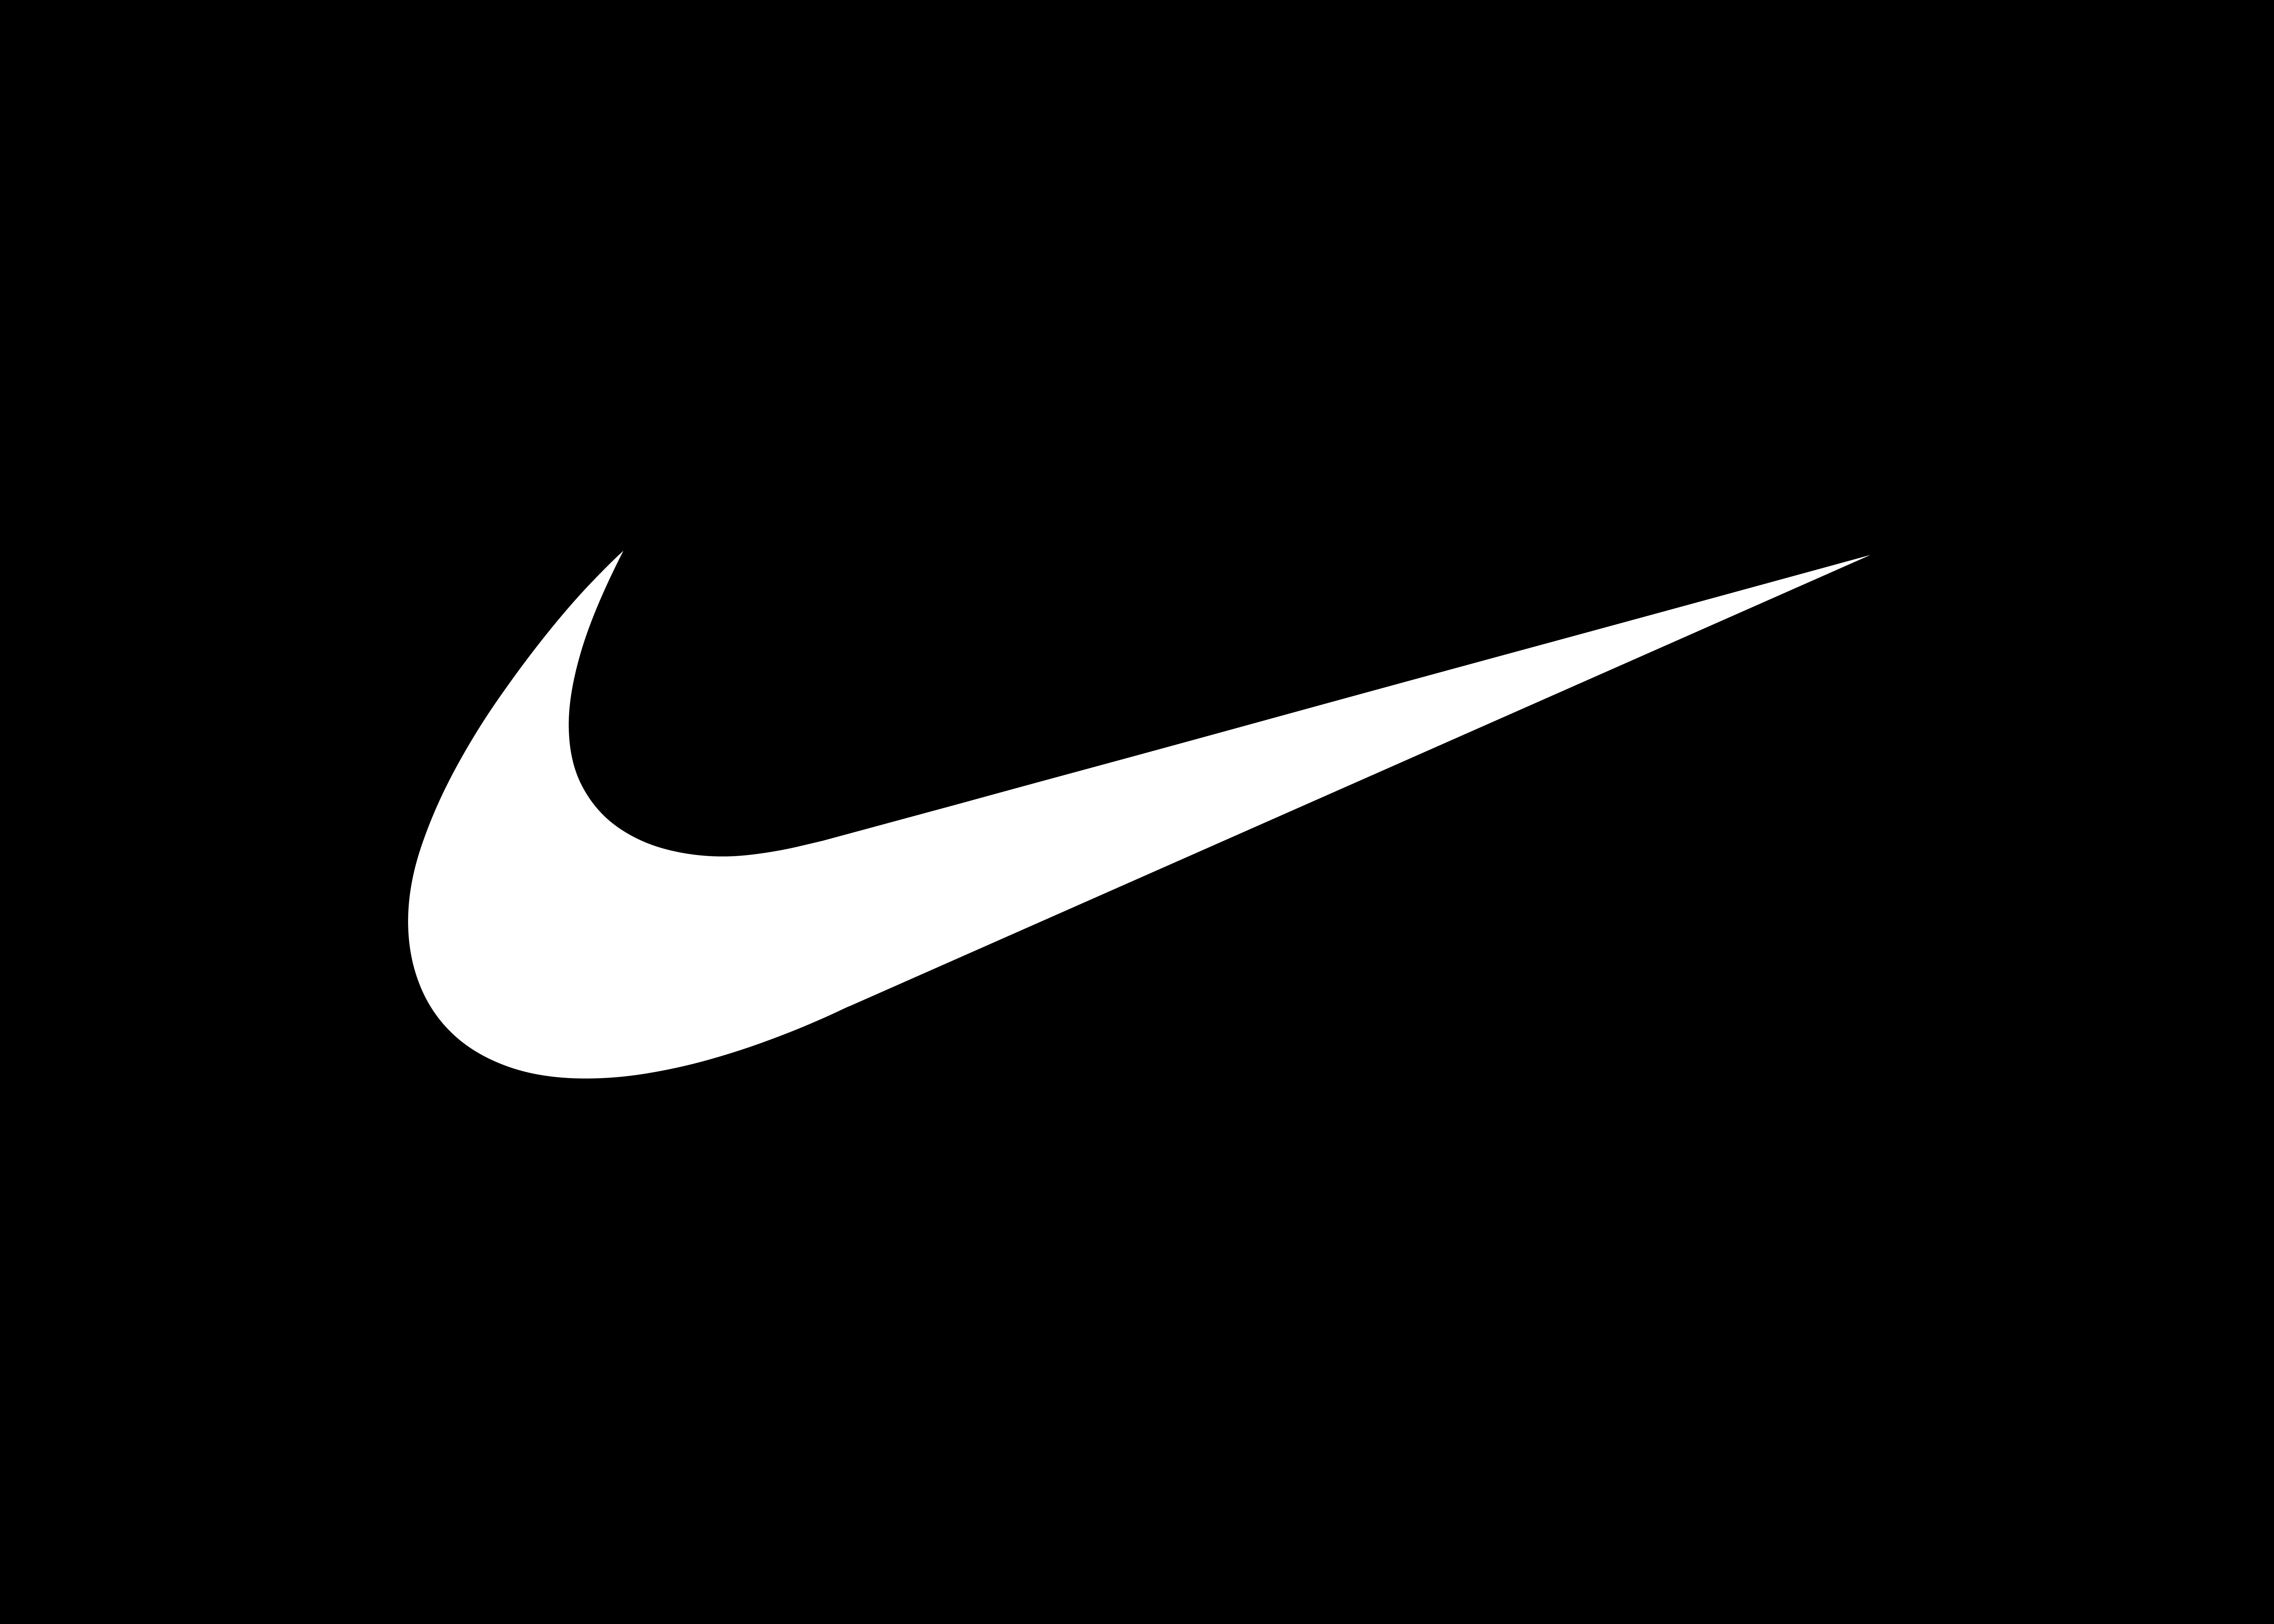 Descarga gratuita de Nike Logo Wallpapers HD